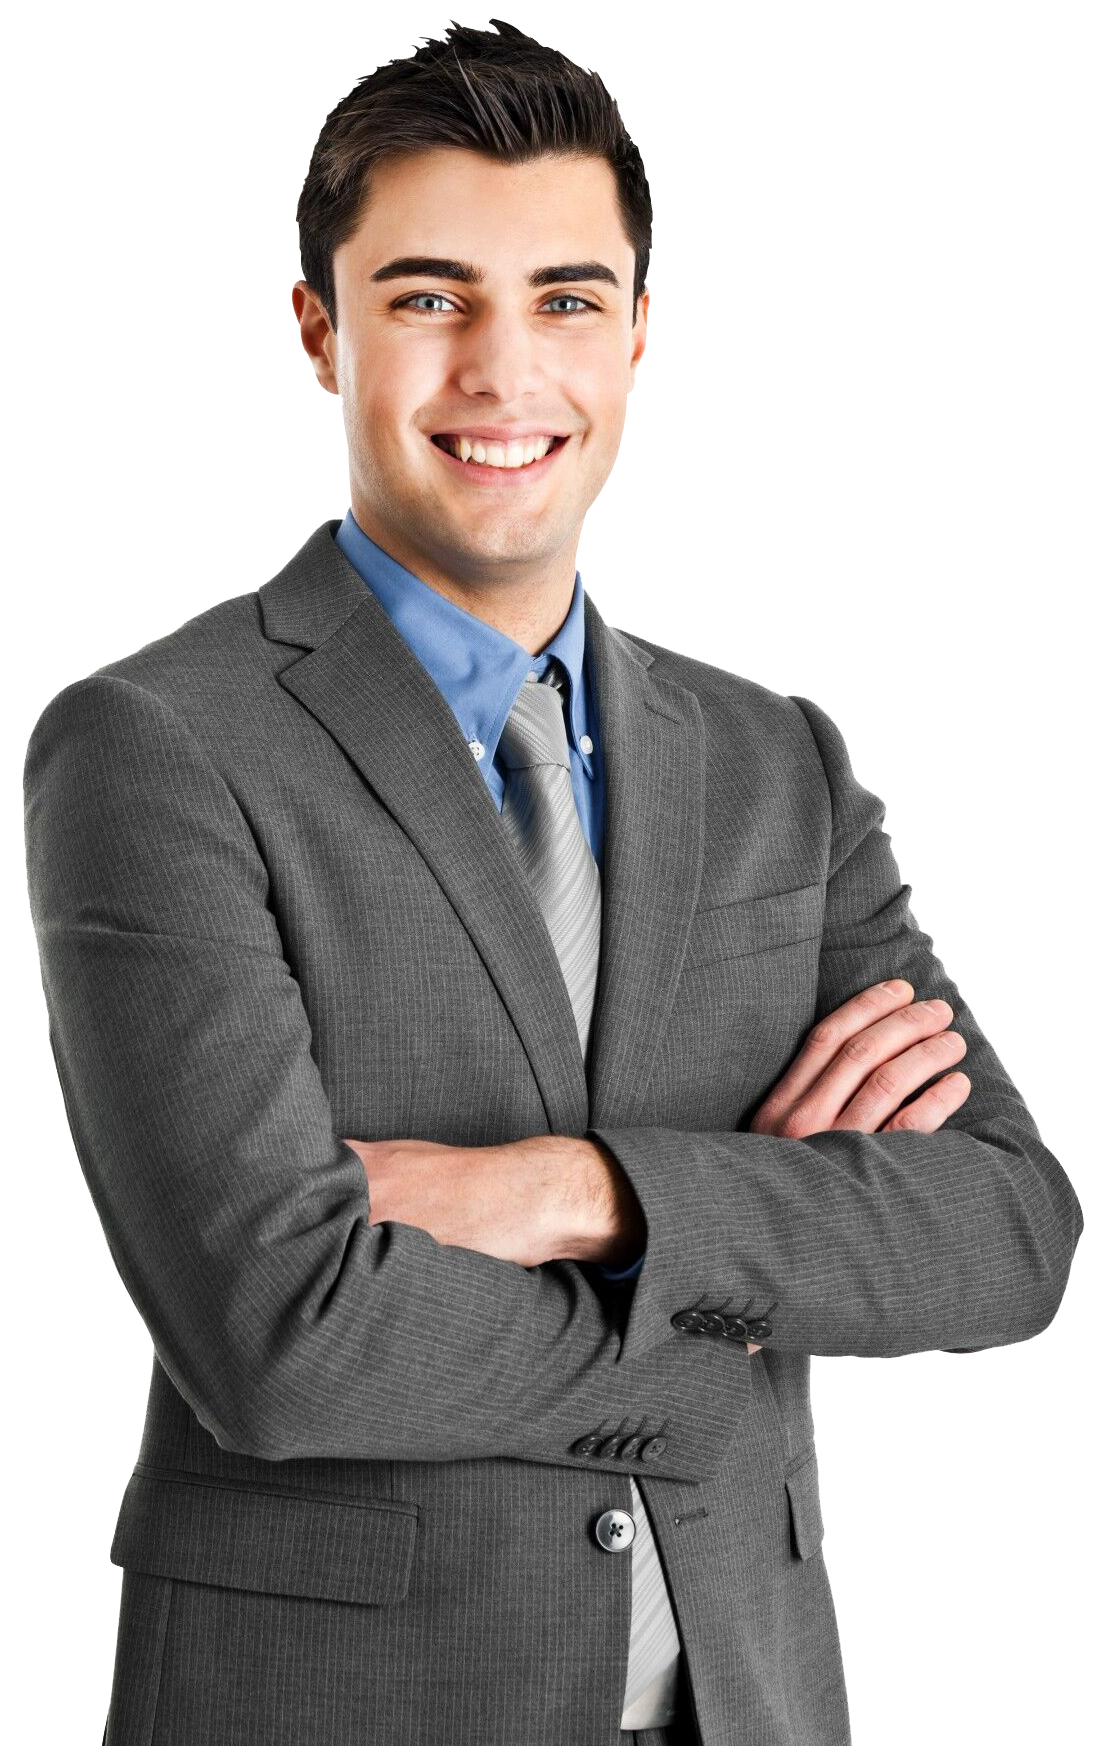 png freeuse library guy transparent business #113381348